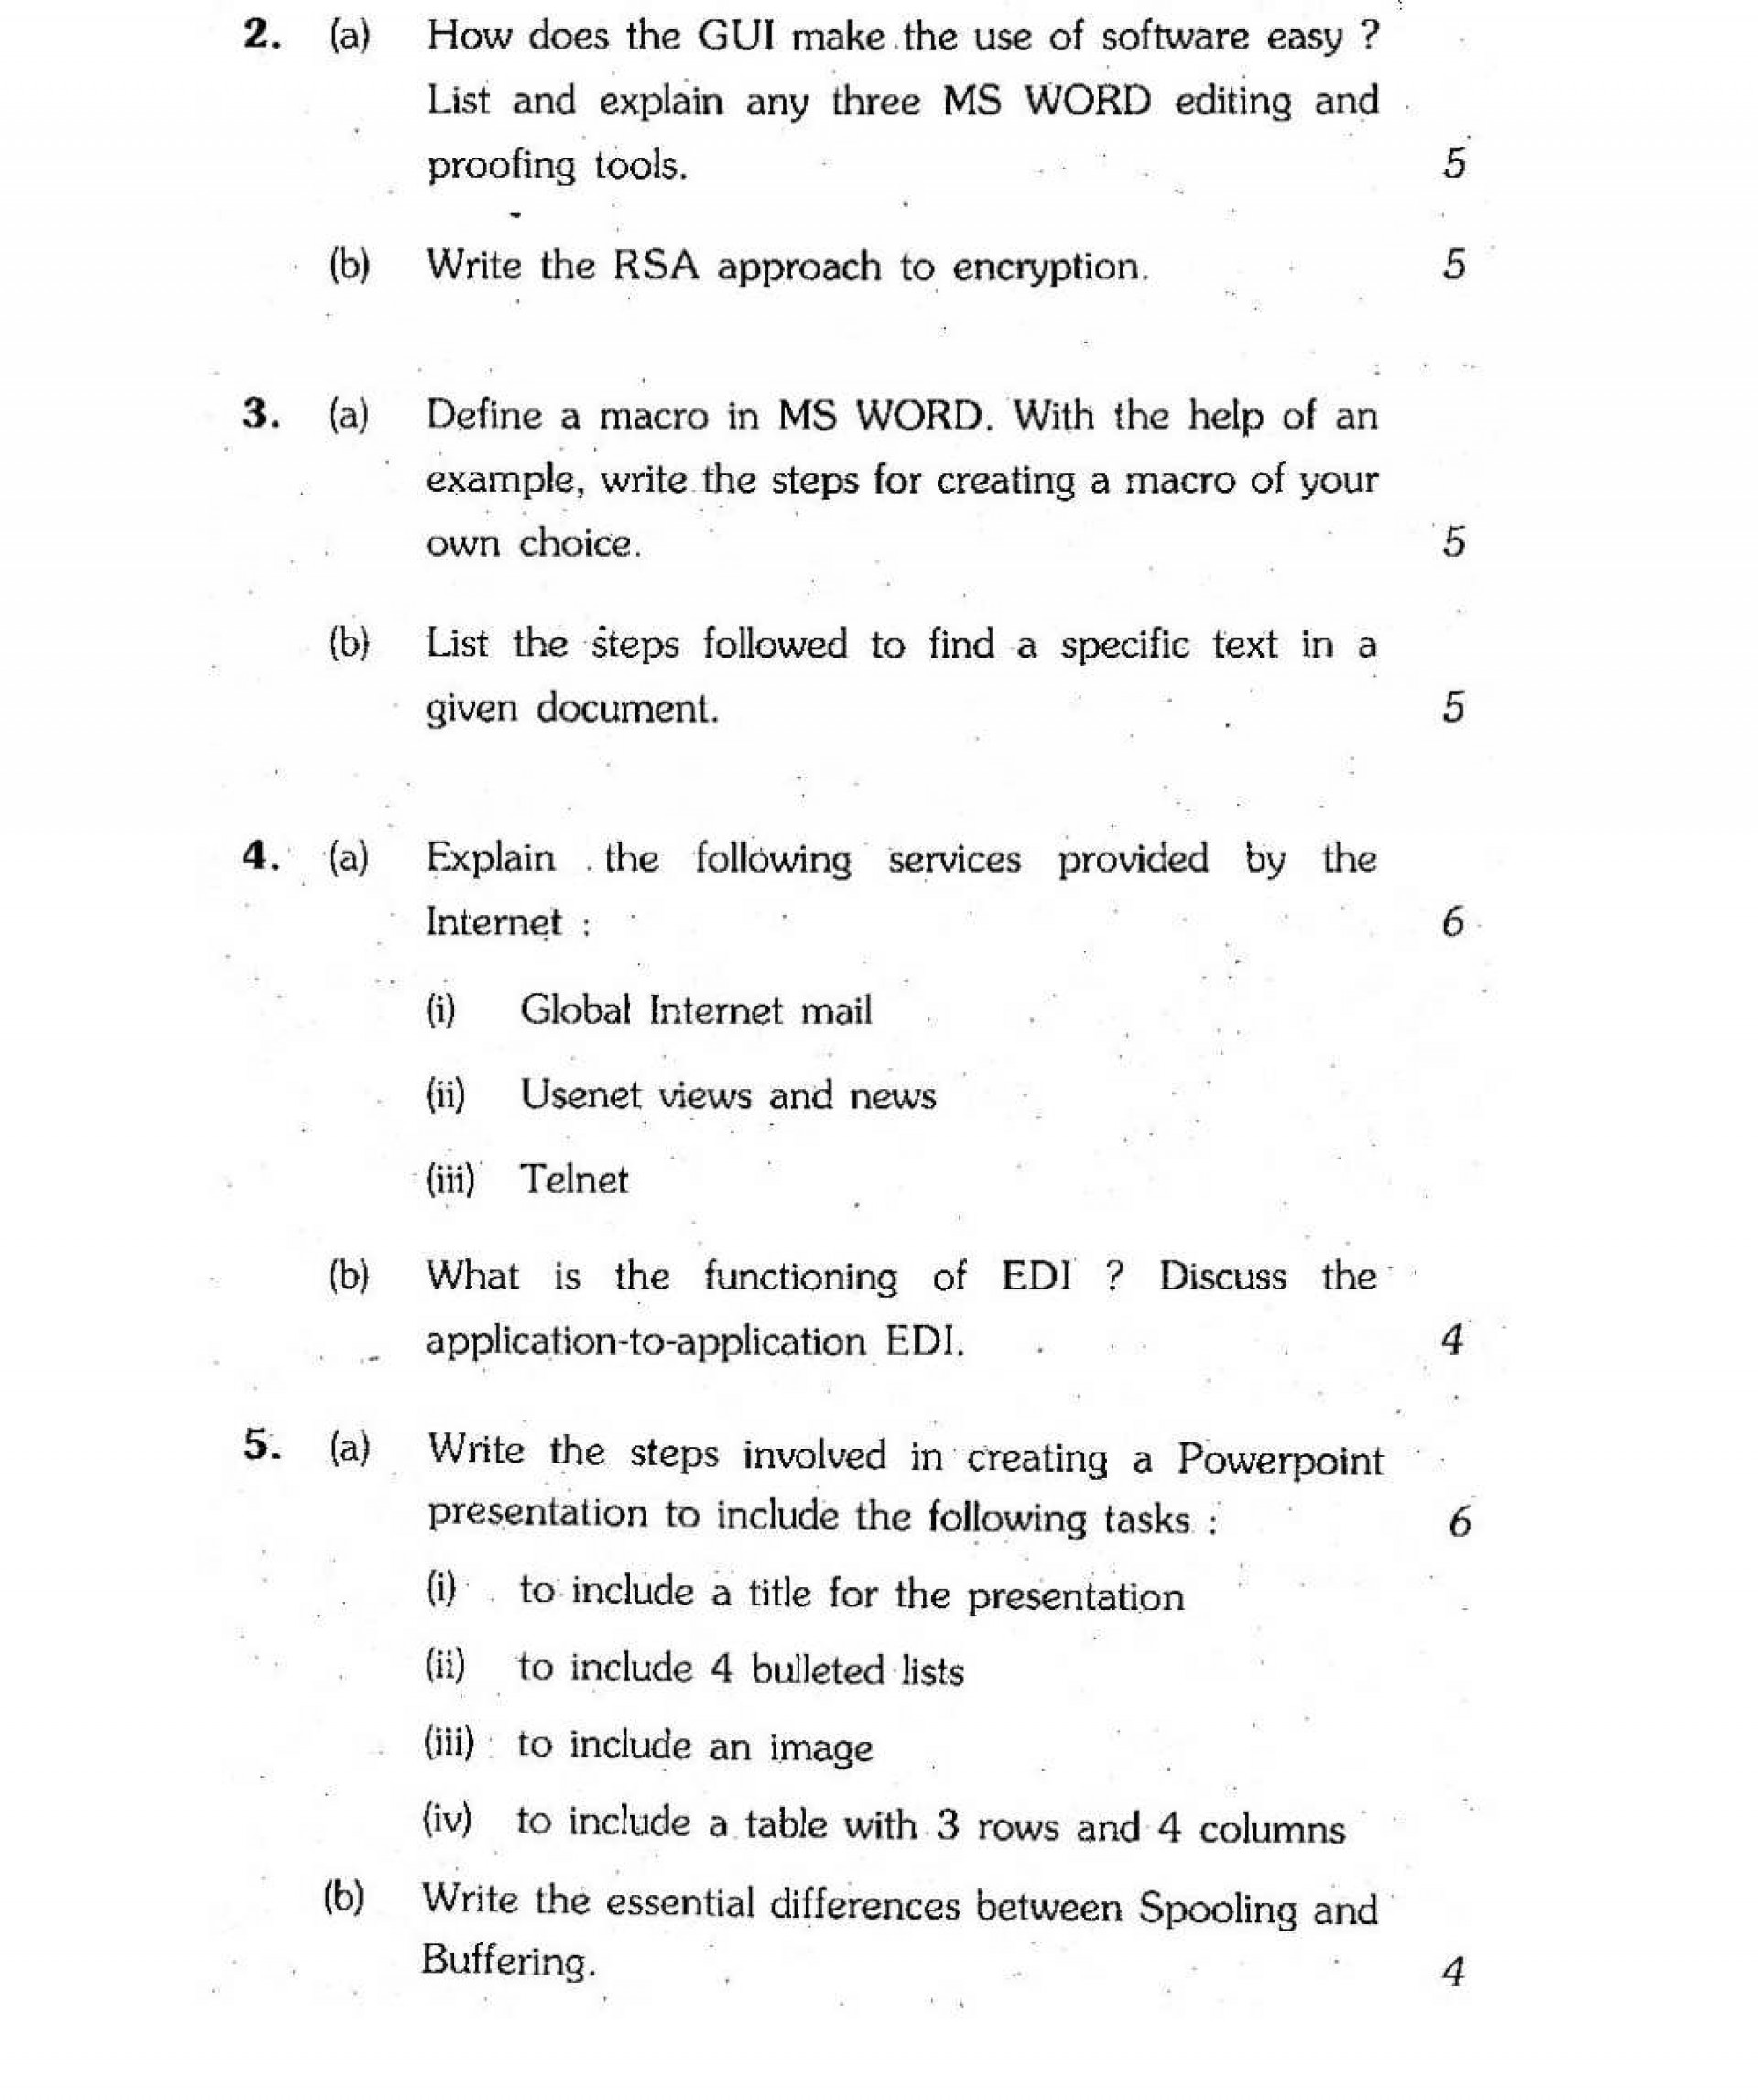 013 Attention Grabbers For Essays Examples Essay Example Ignou Computer Paper Unforgettable Of Expository Persuasive 1920